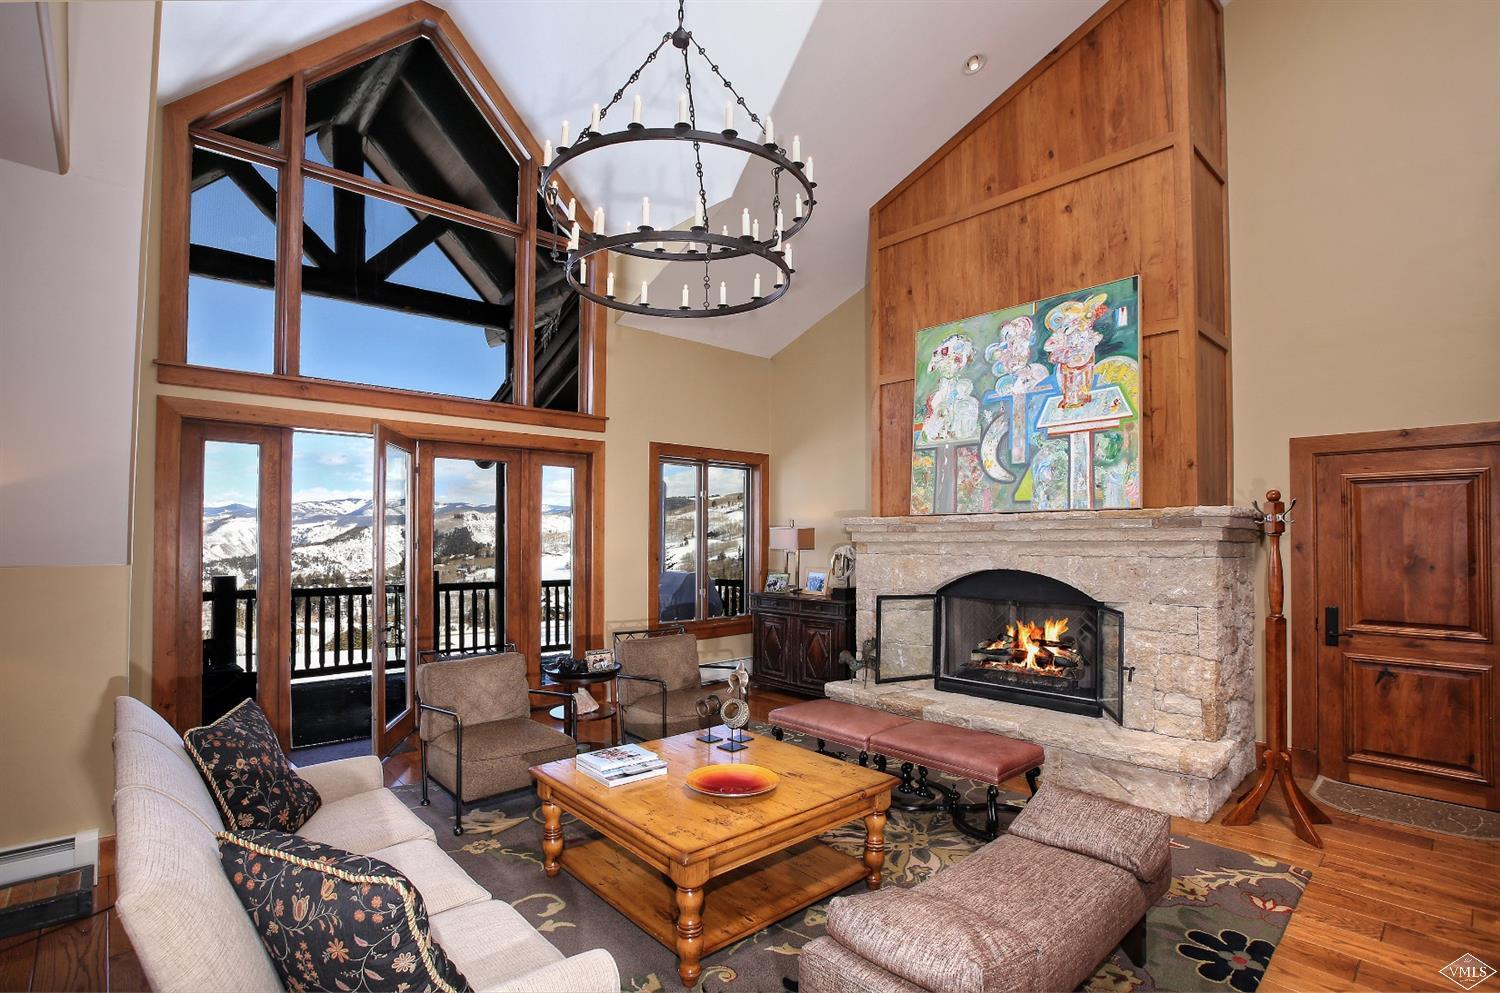 The jewel in the crown of exclusive Bachelor Gulch Village. Featuring 2 levels, this penthouse runs East to West, all the way through the building for remarkable sunrise to sunset views. Your privacy is guaranteed with direct to unit entry from the parking garage. On-site amenities include pool, hot tub, gym, white glove concierge service and ski room with private locker for the best ski-in/ski-out access on the mountain. A loft and tv room/den complete this one of a kind alpine sanctuary.